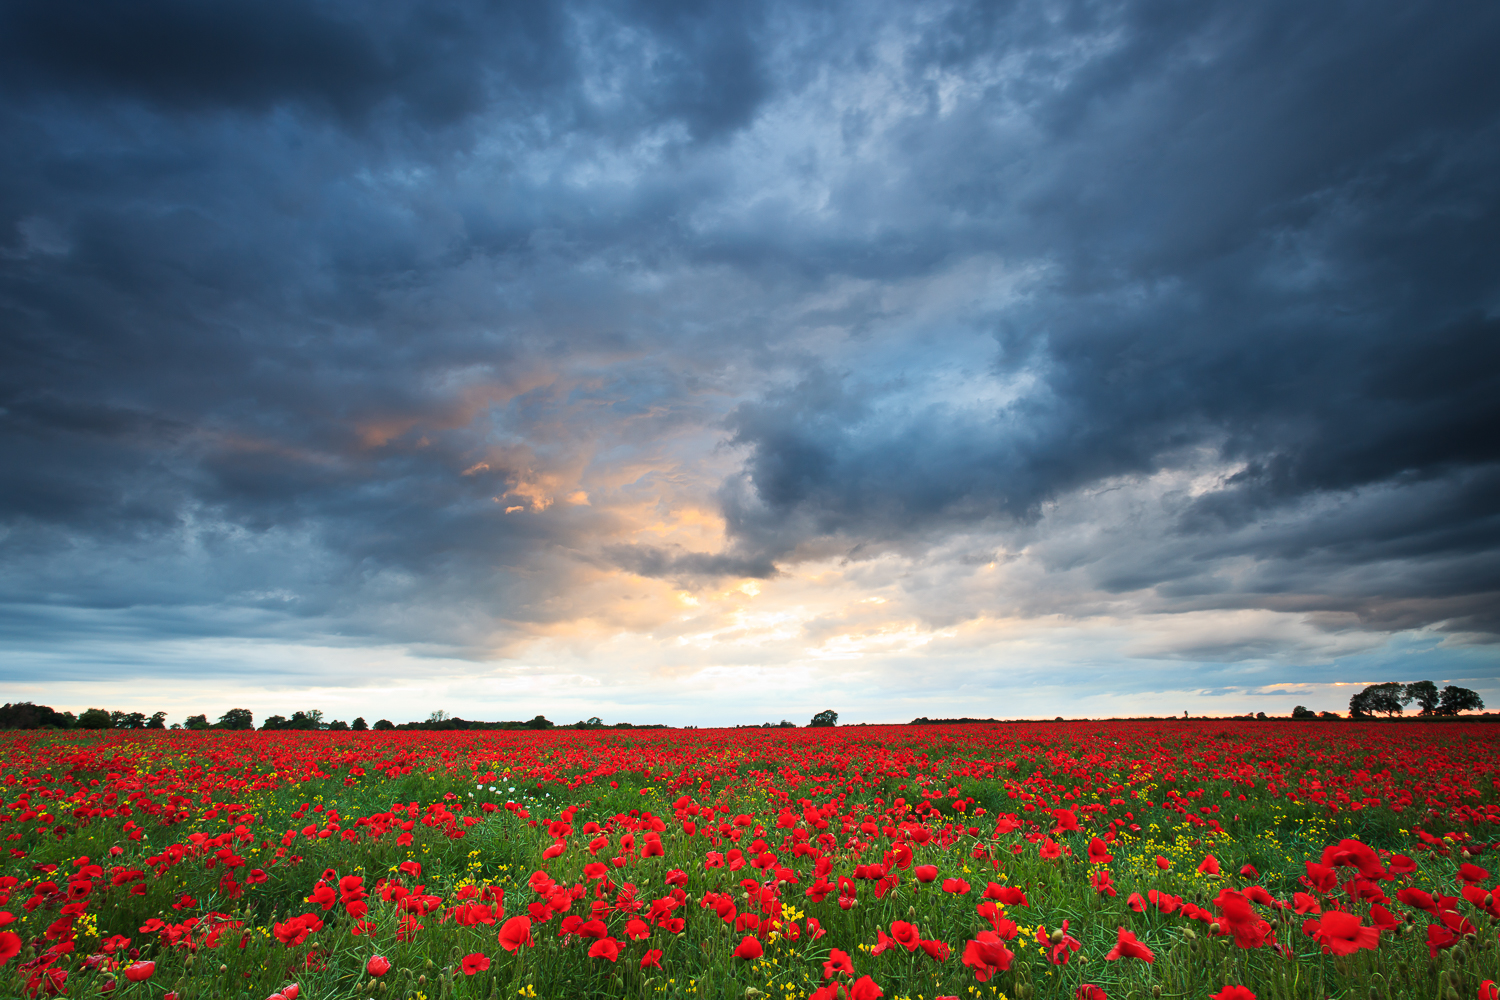 20110609_poppies_0048-Edit.jpg